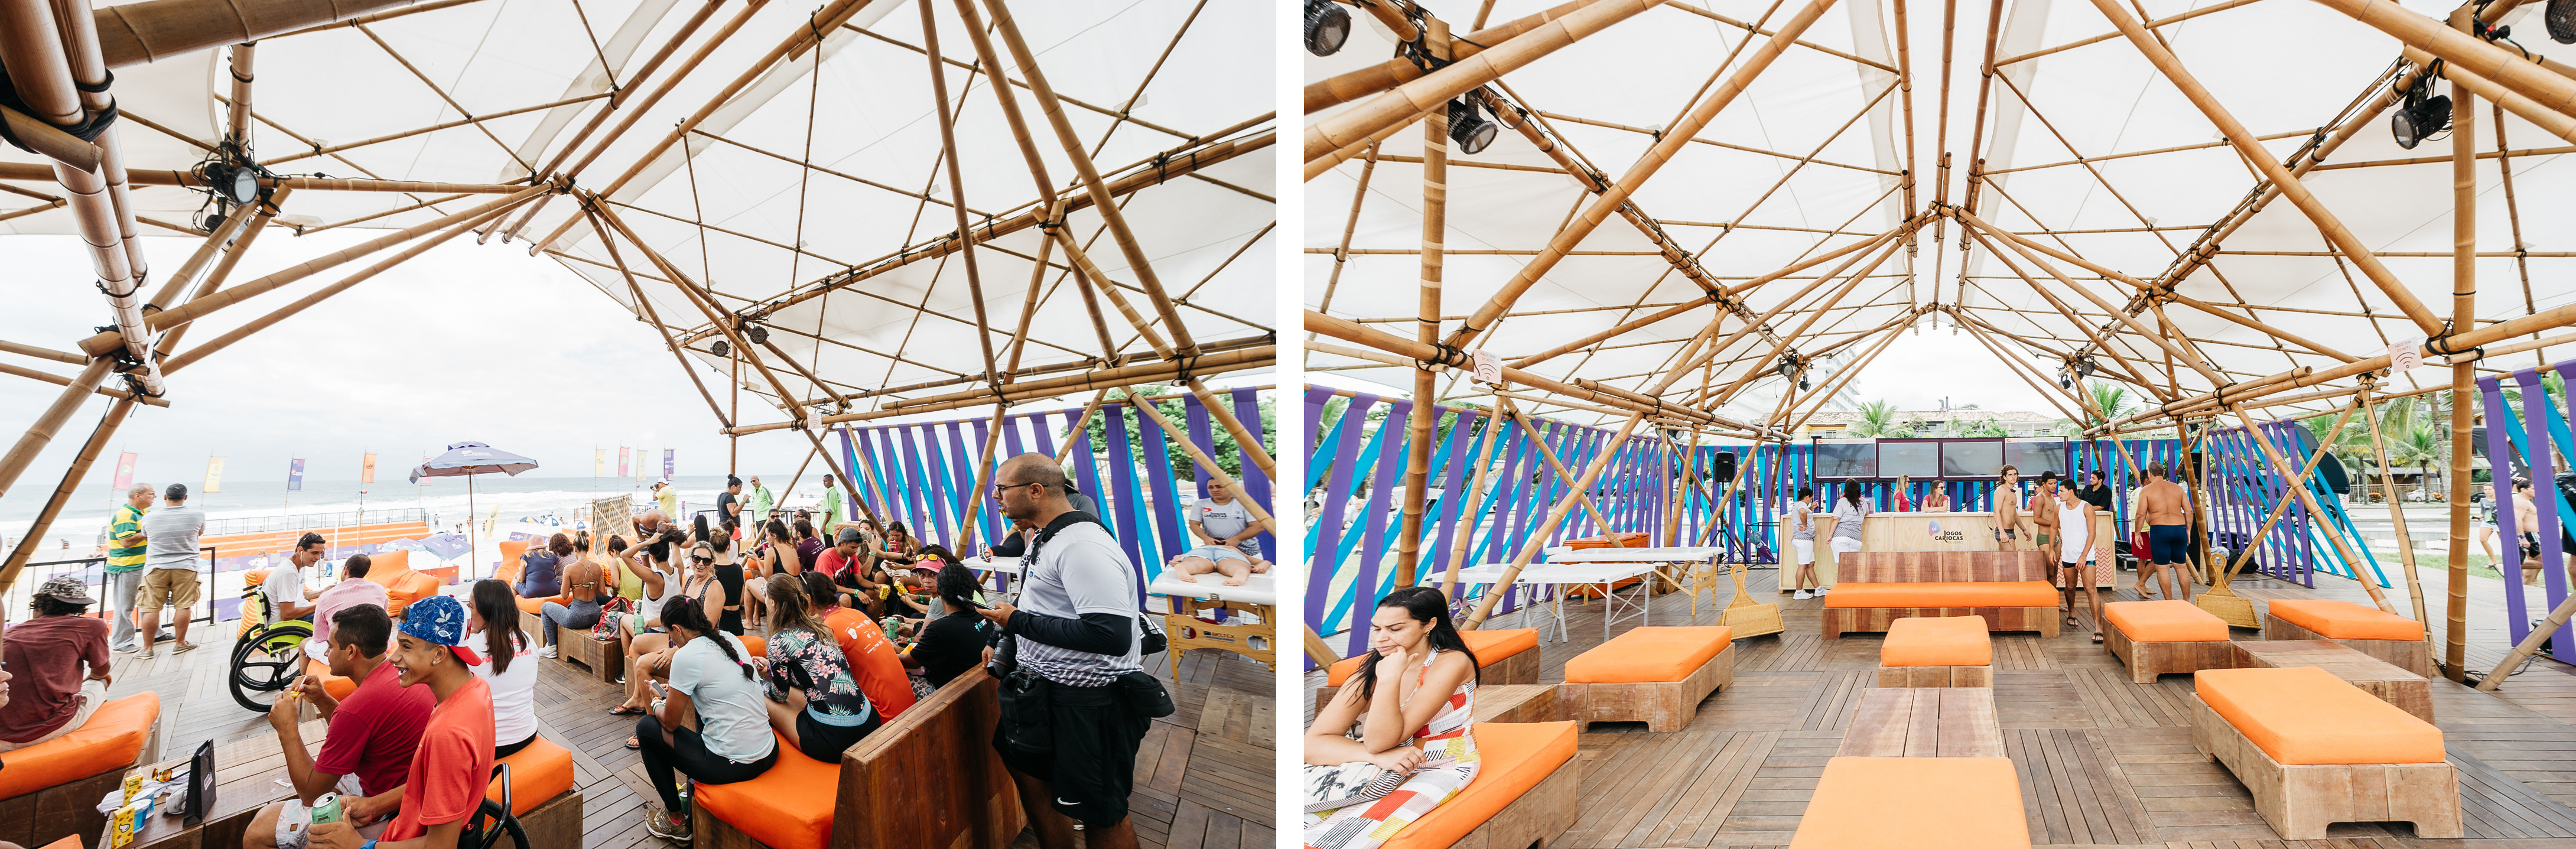 Deployable-Bamboo-Roof-Structure-1.jpg